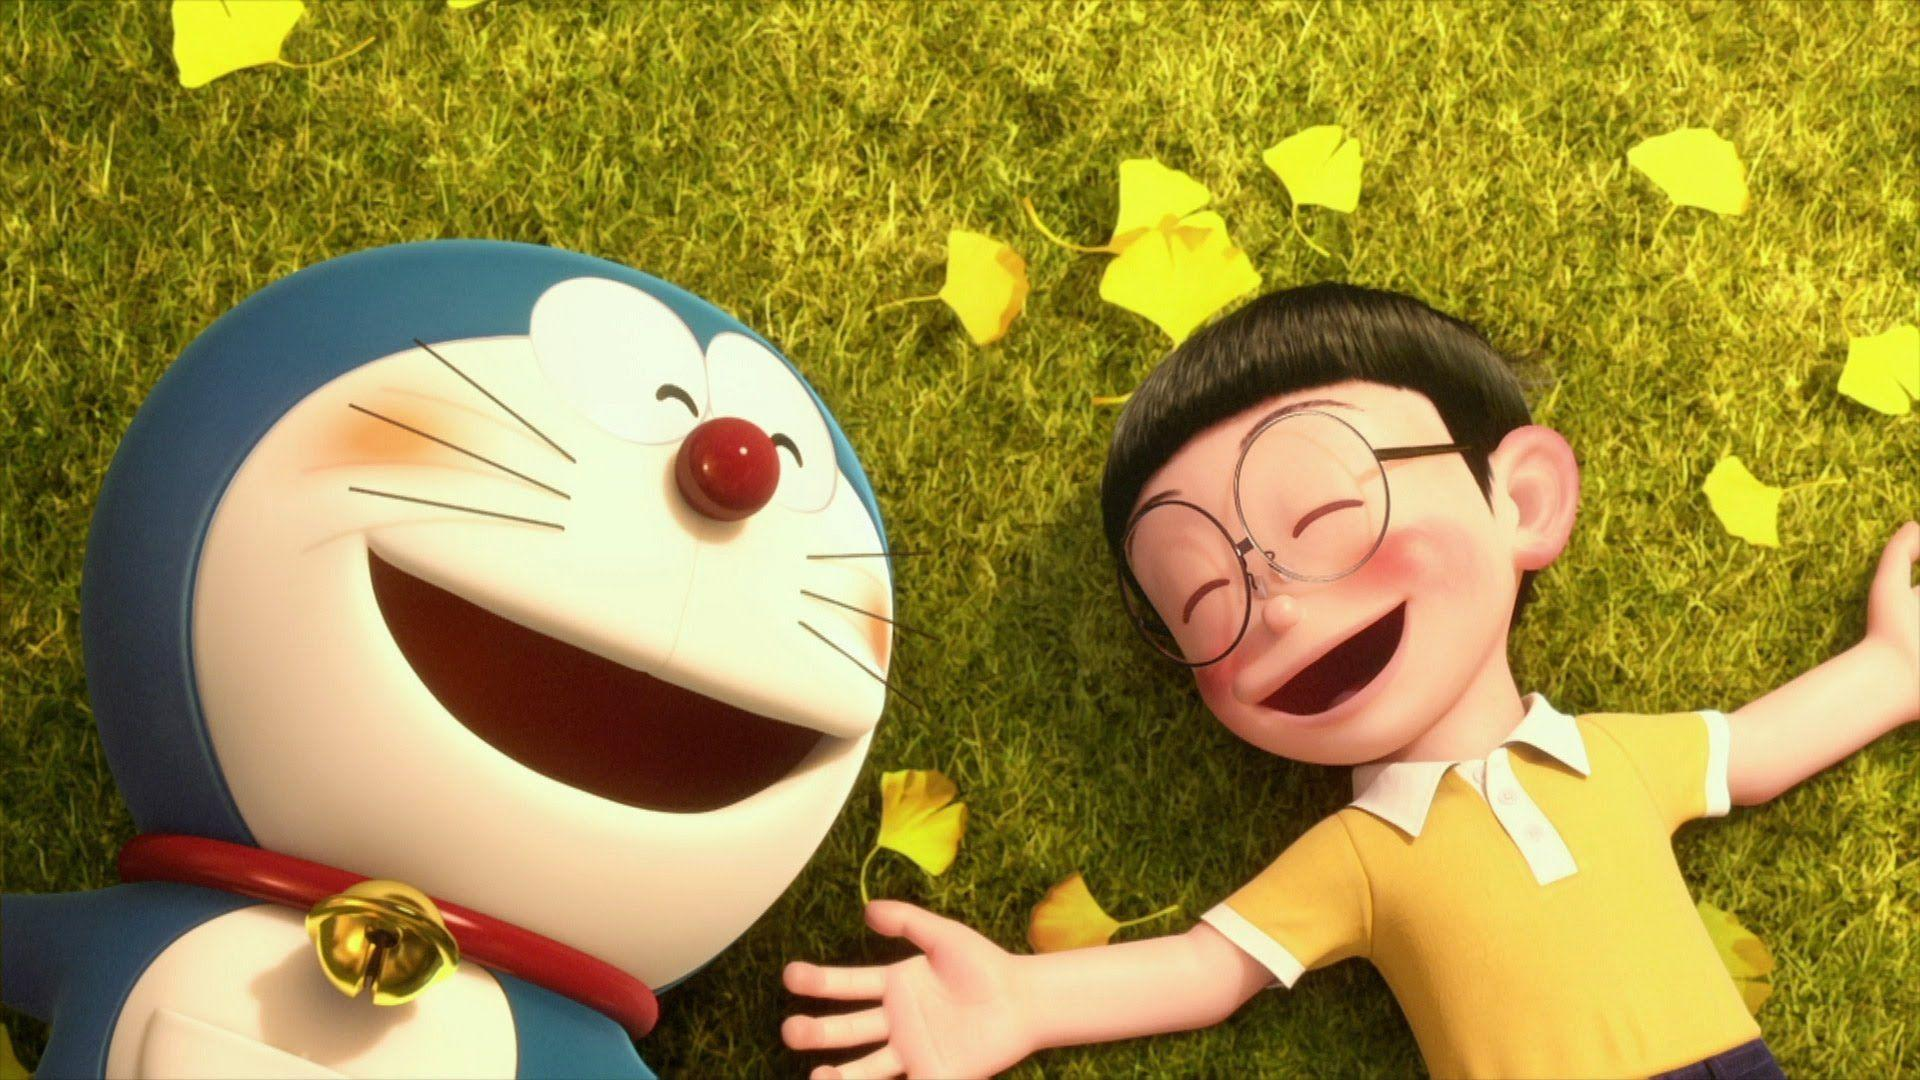 Nobita Hd Wallpapers Wallpaper Cave